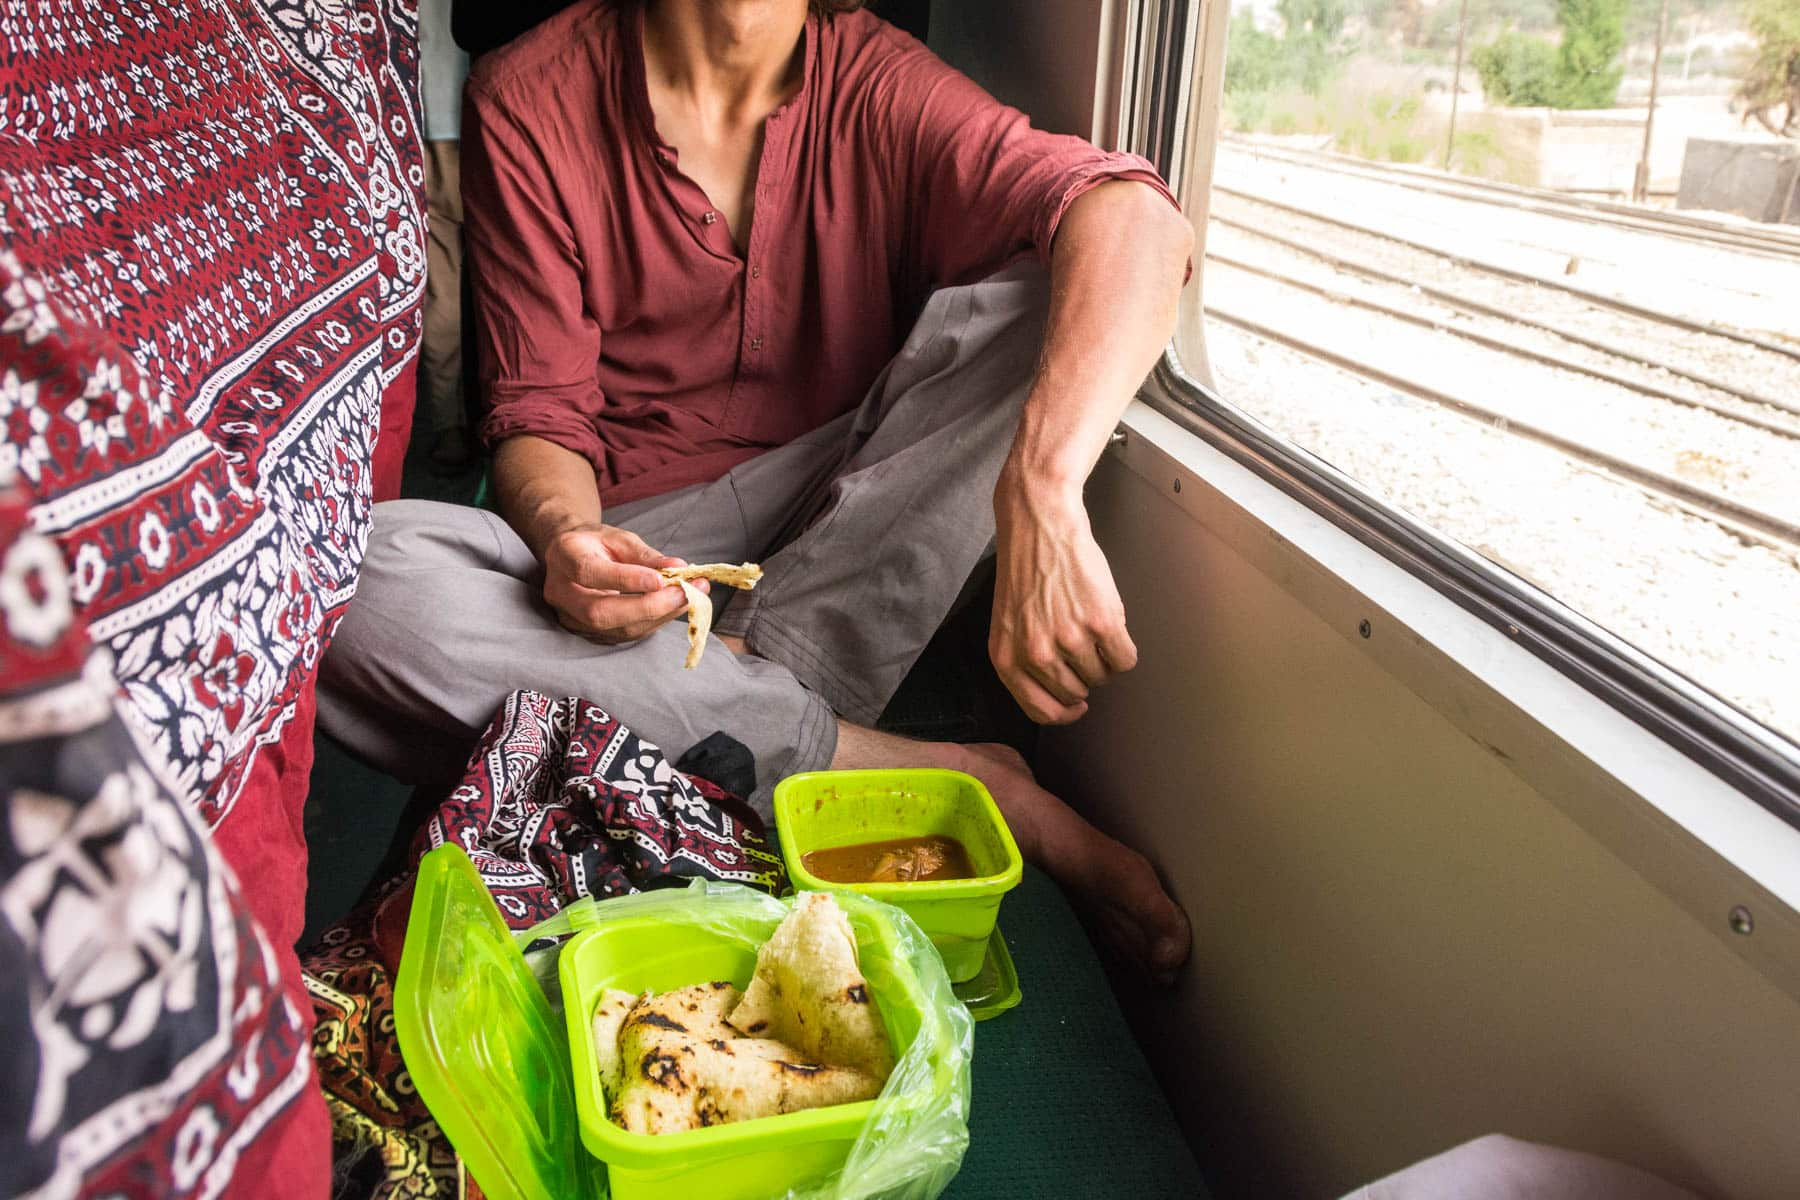 Guide to train travel in Pakistan - Eating a gift of food on the train - Lost With Purpose travel blog